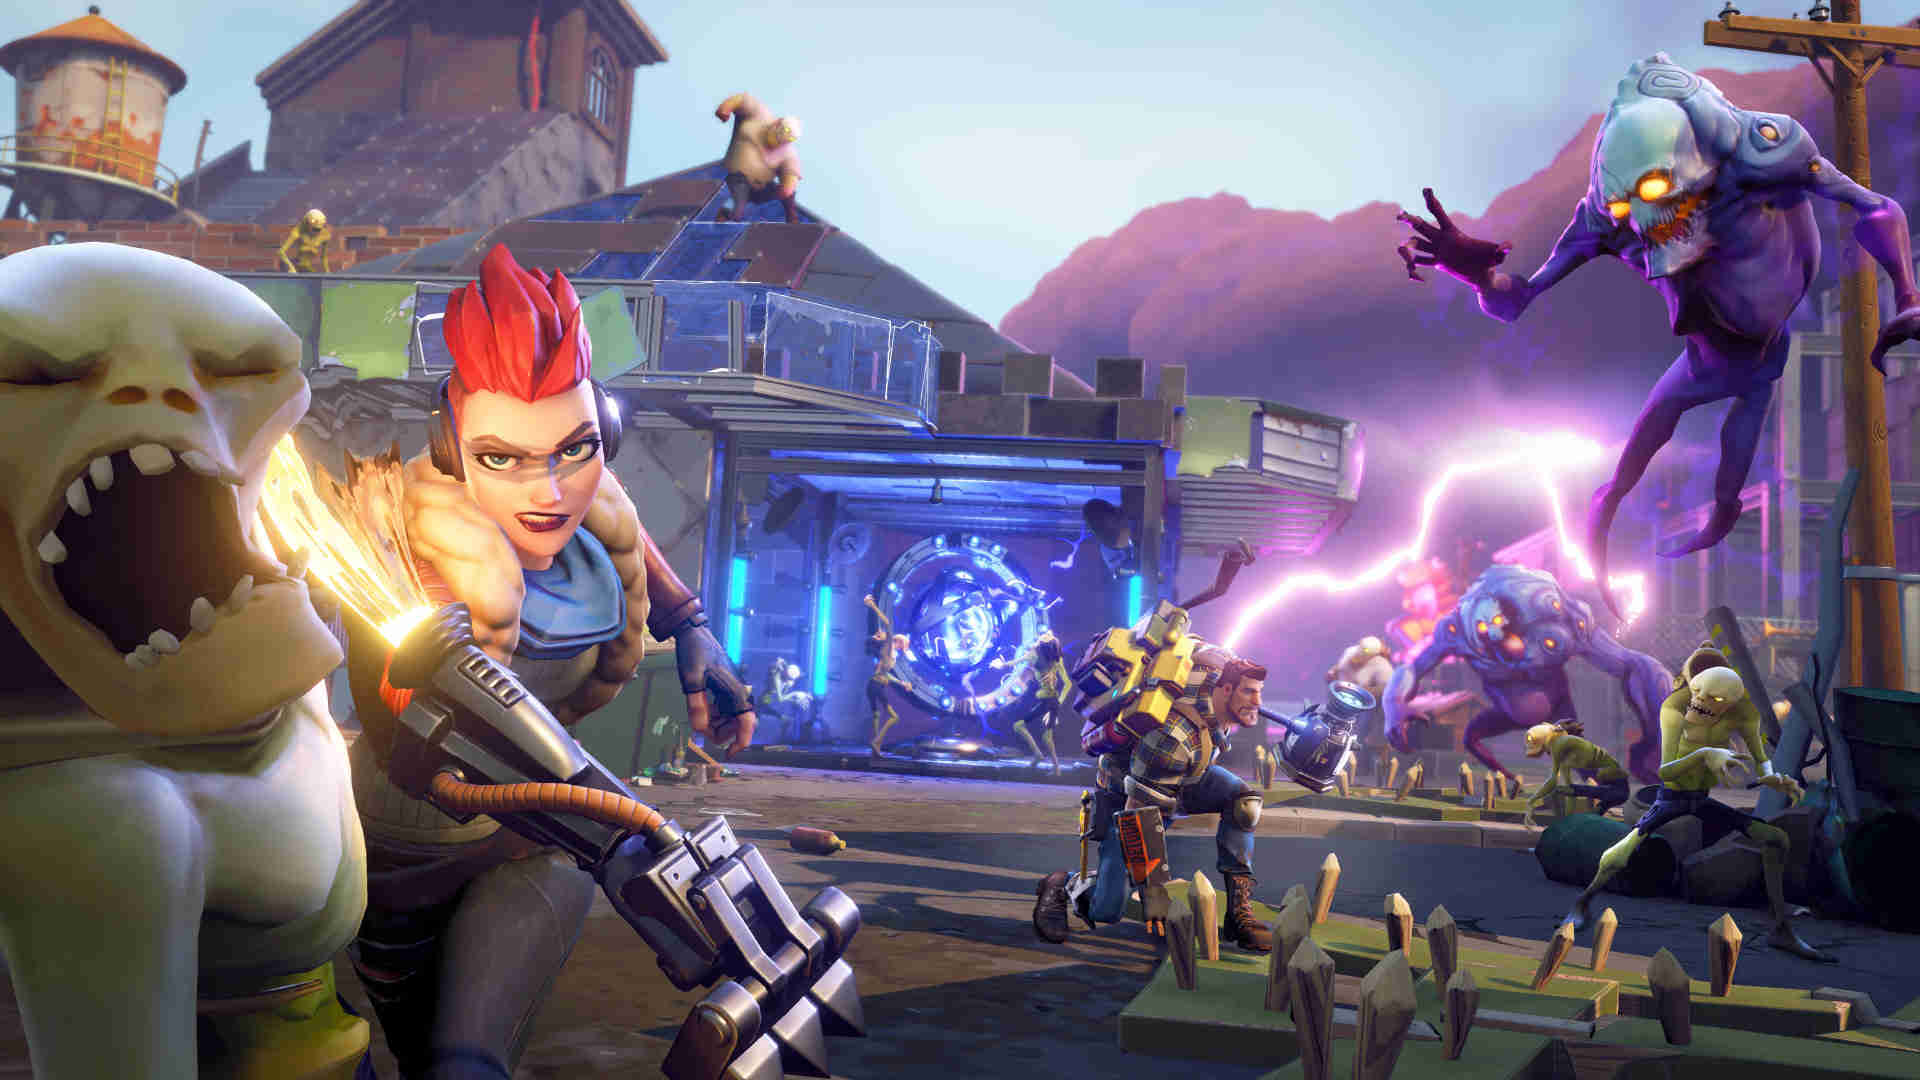 Fortnite Developers Talk About Weapons, Team Killing And More